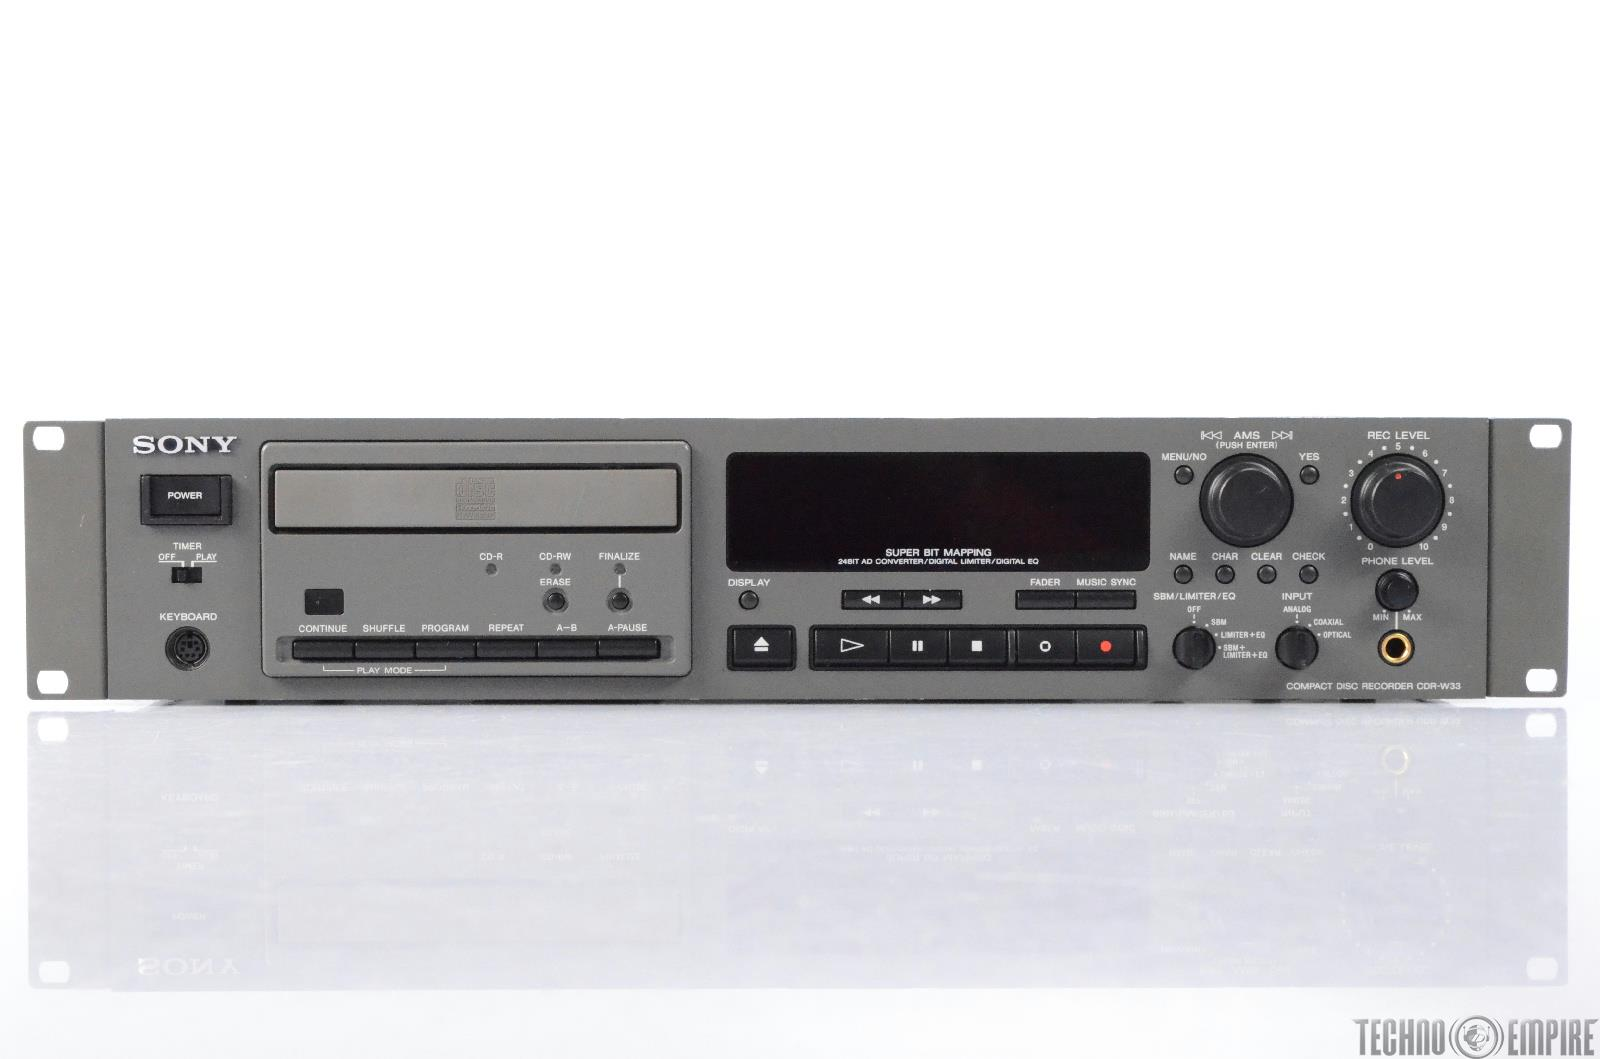 Sony CDR-W33 Compact Disc CD Recorder Fairfax Recordings #28662